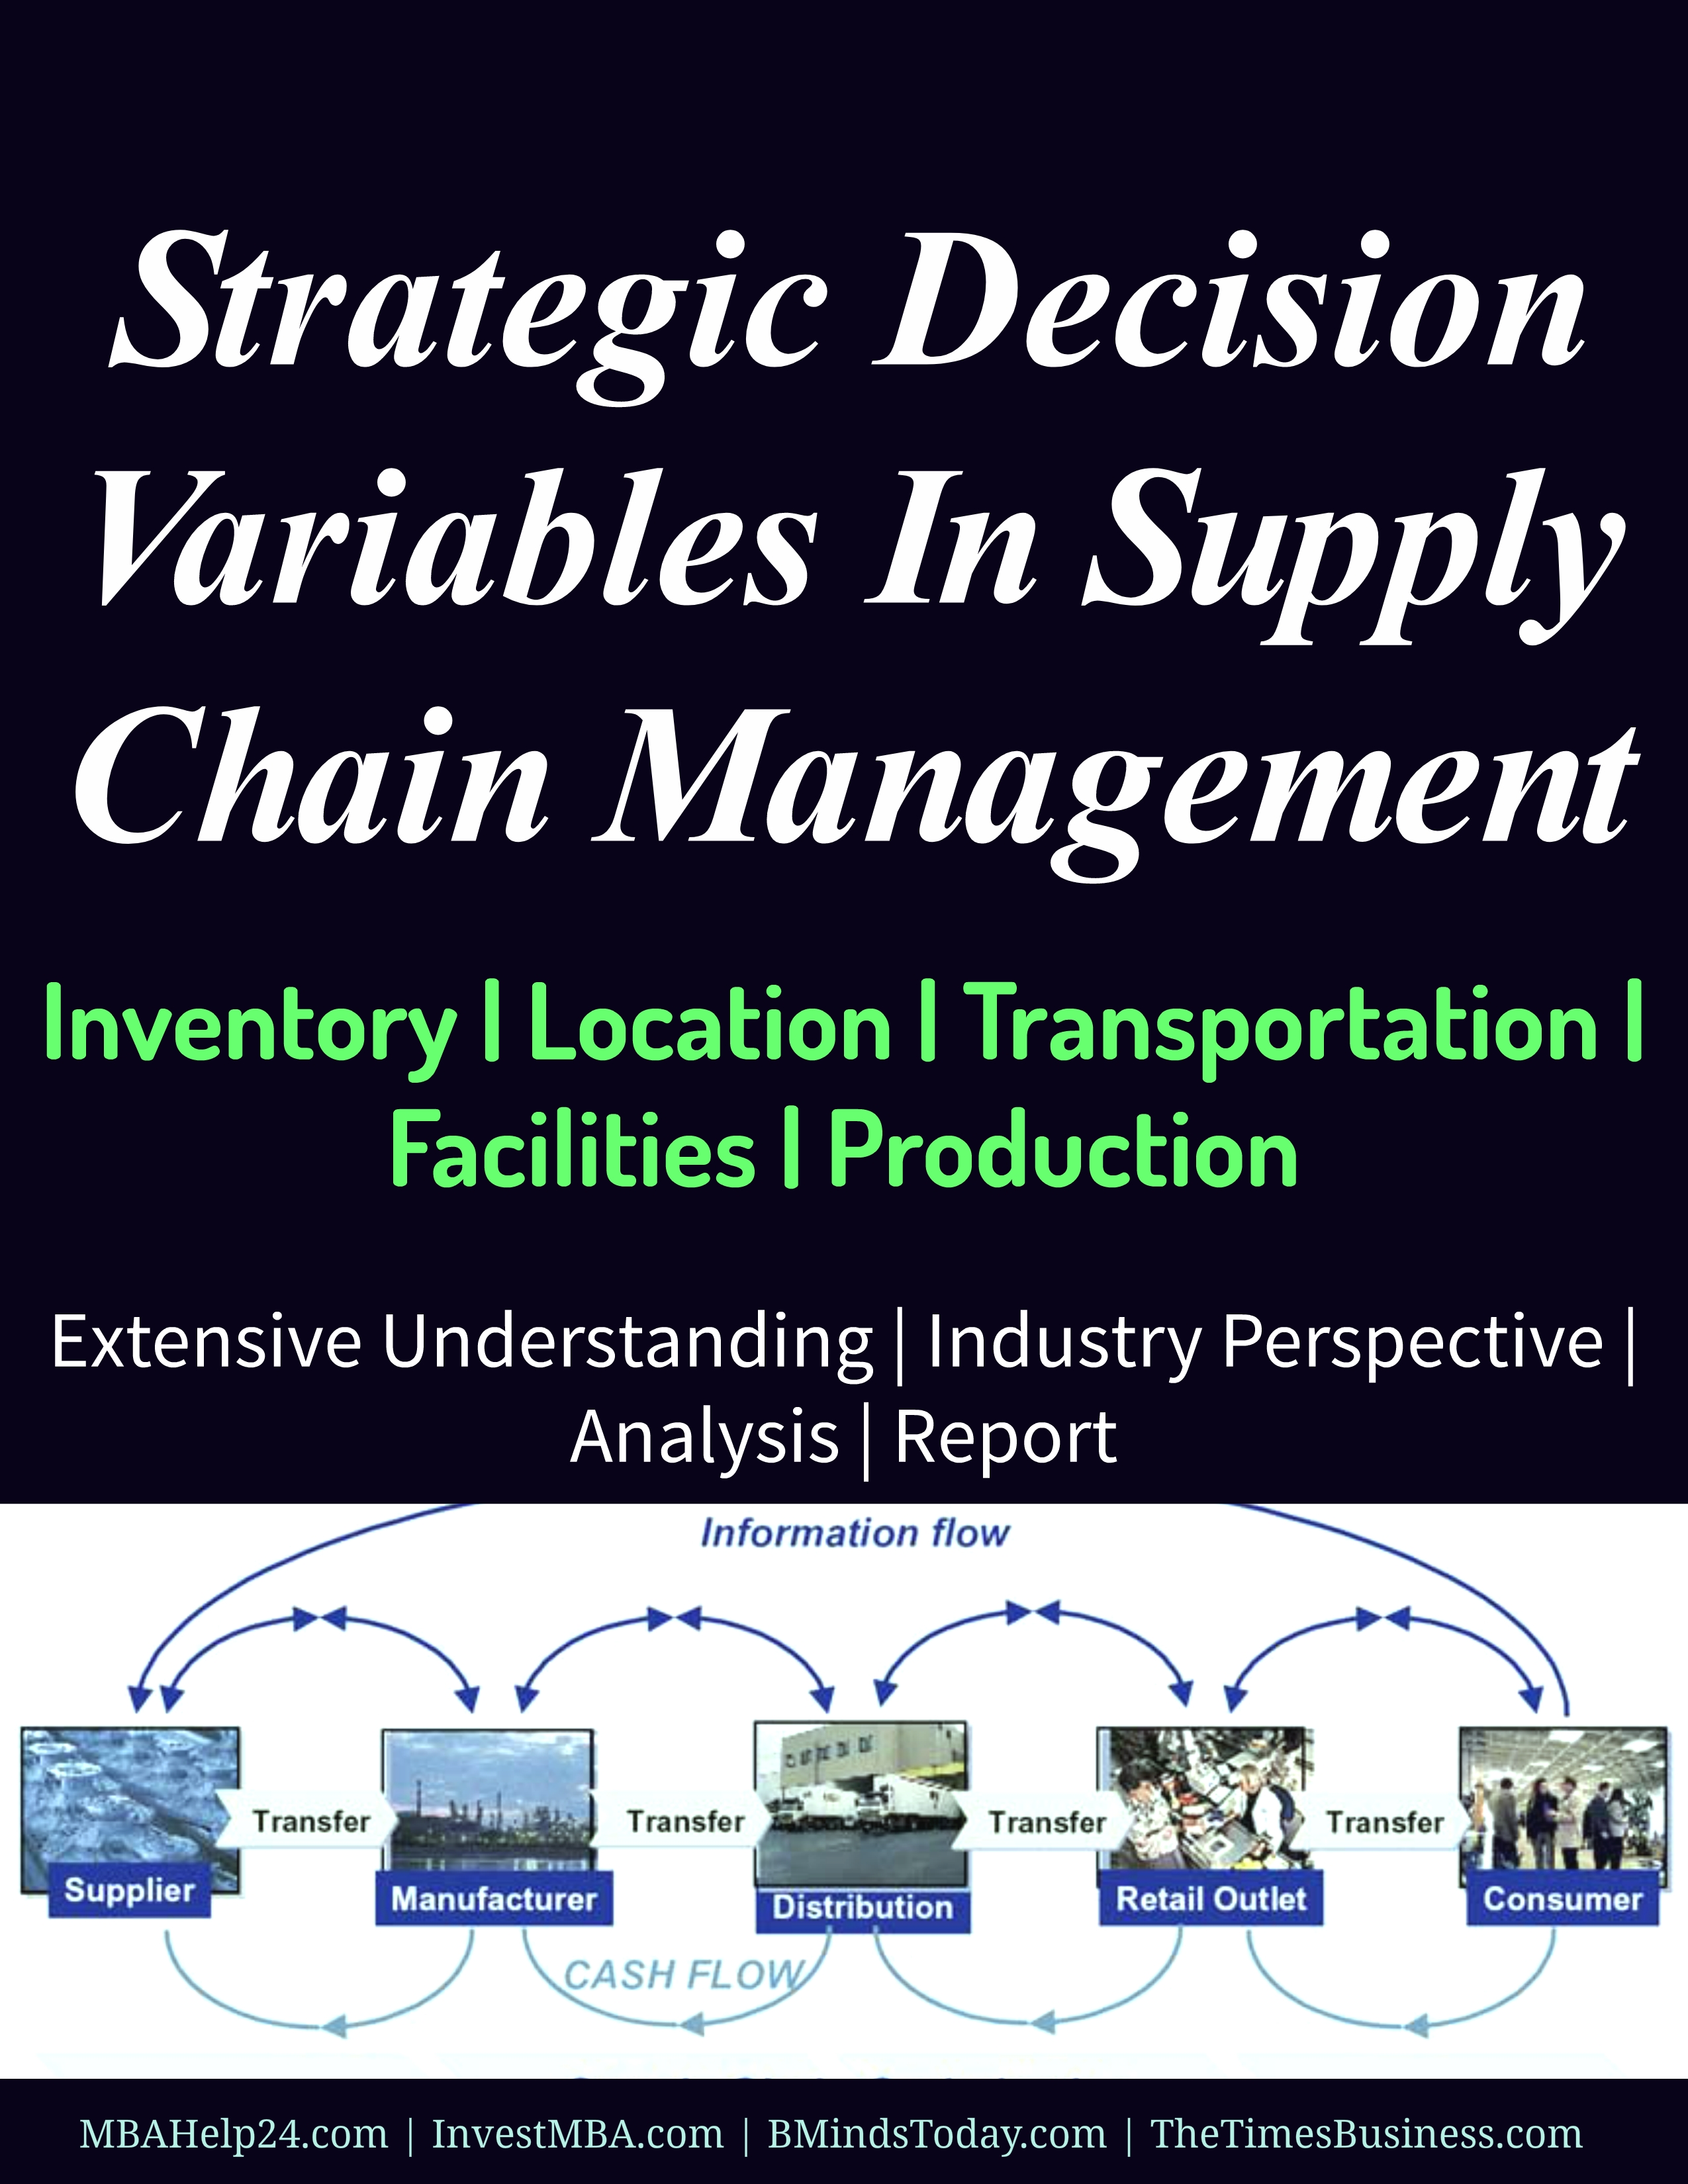 Strategic Decision Variables In Supply Chain Management-Inventory, Transportation, Facilities  supply chain Strategic Decision Variables In Supply Chain Management | Inventory | Transportation | Facilities Strategic Decision Variables In Supply Chain Management Inventory Transportation Facilities